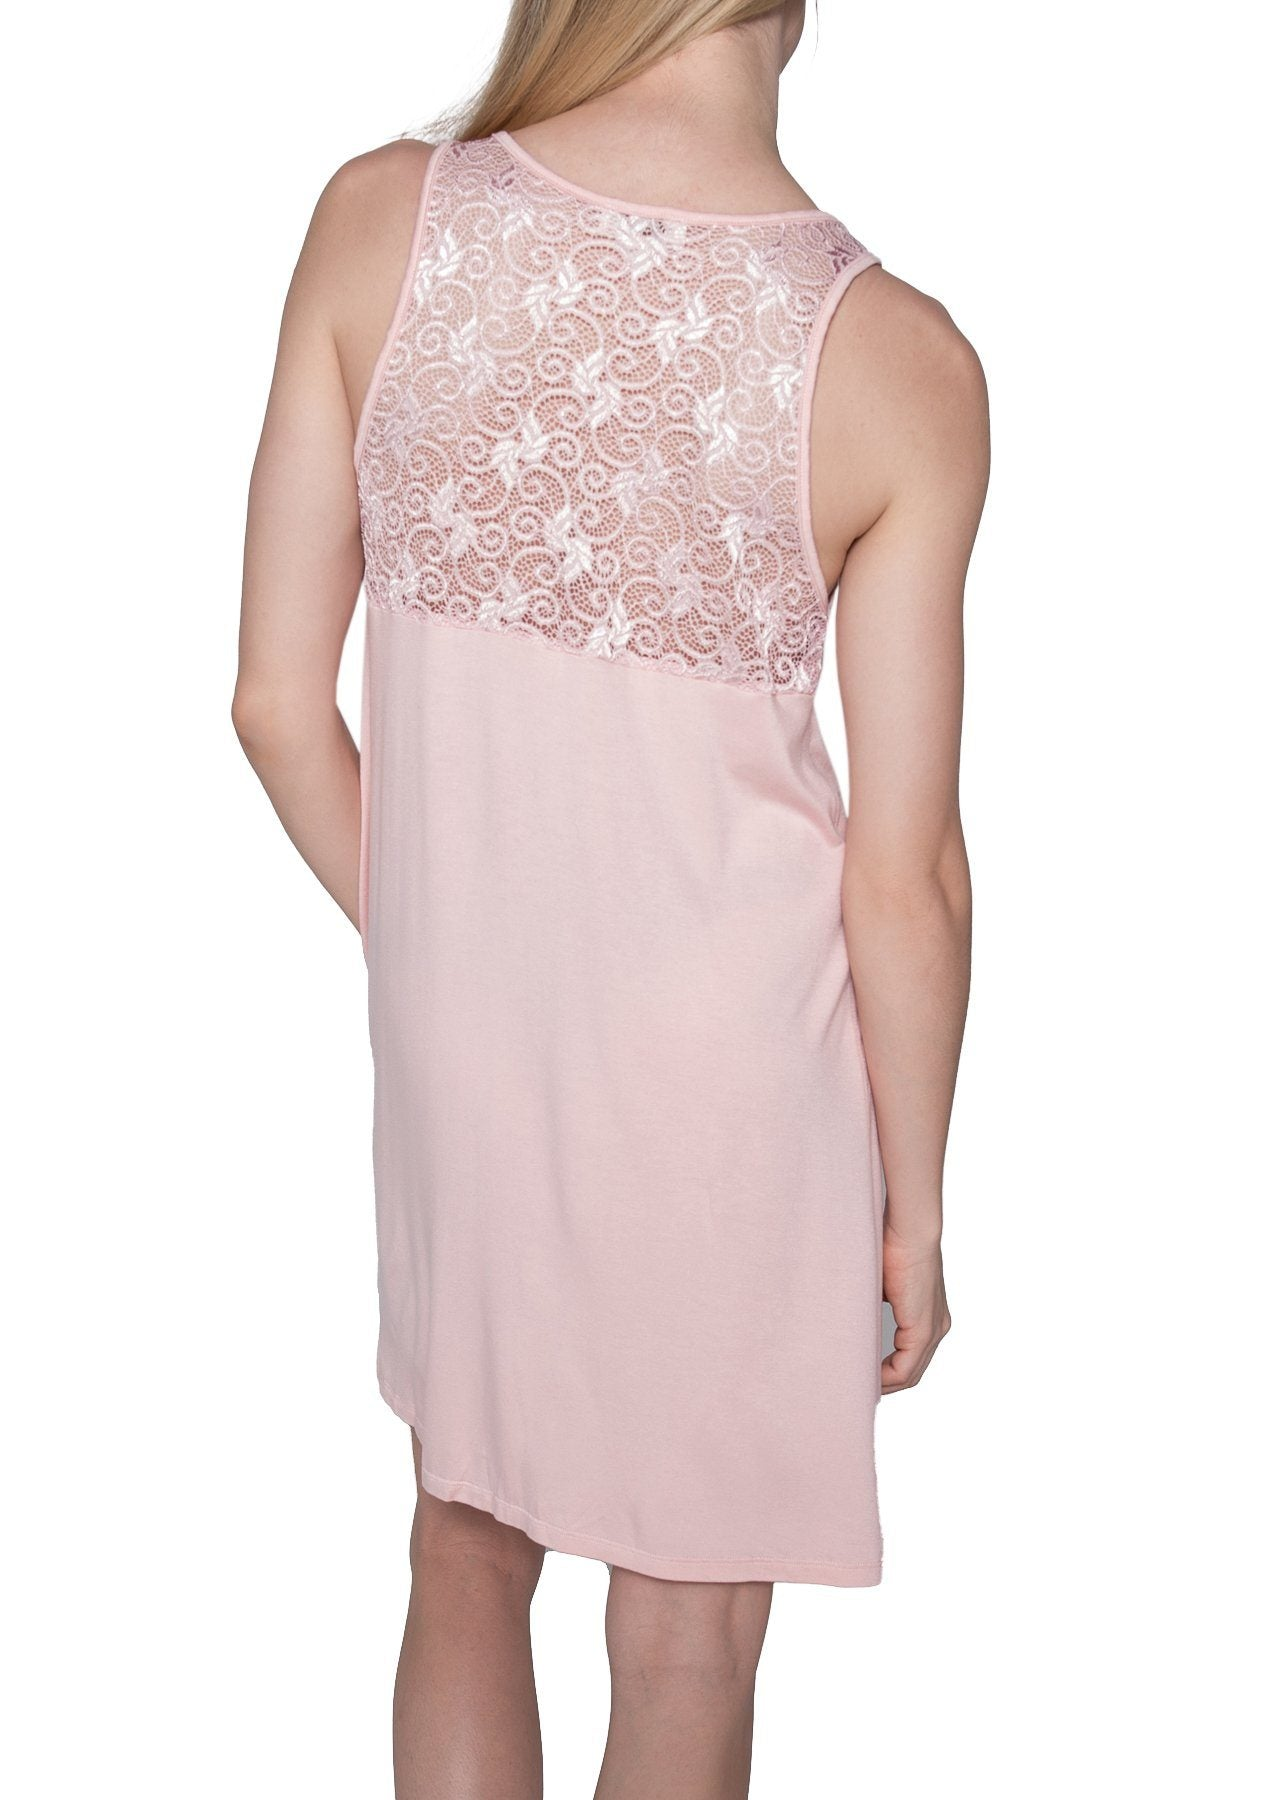 Olivia Short Gown - Seashell Pink Mystique Intimates